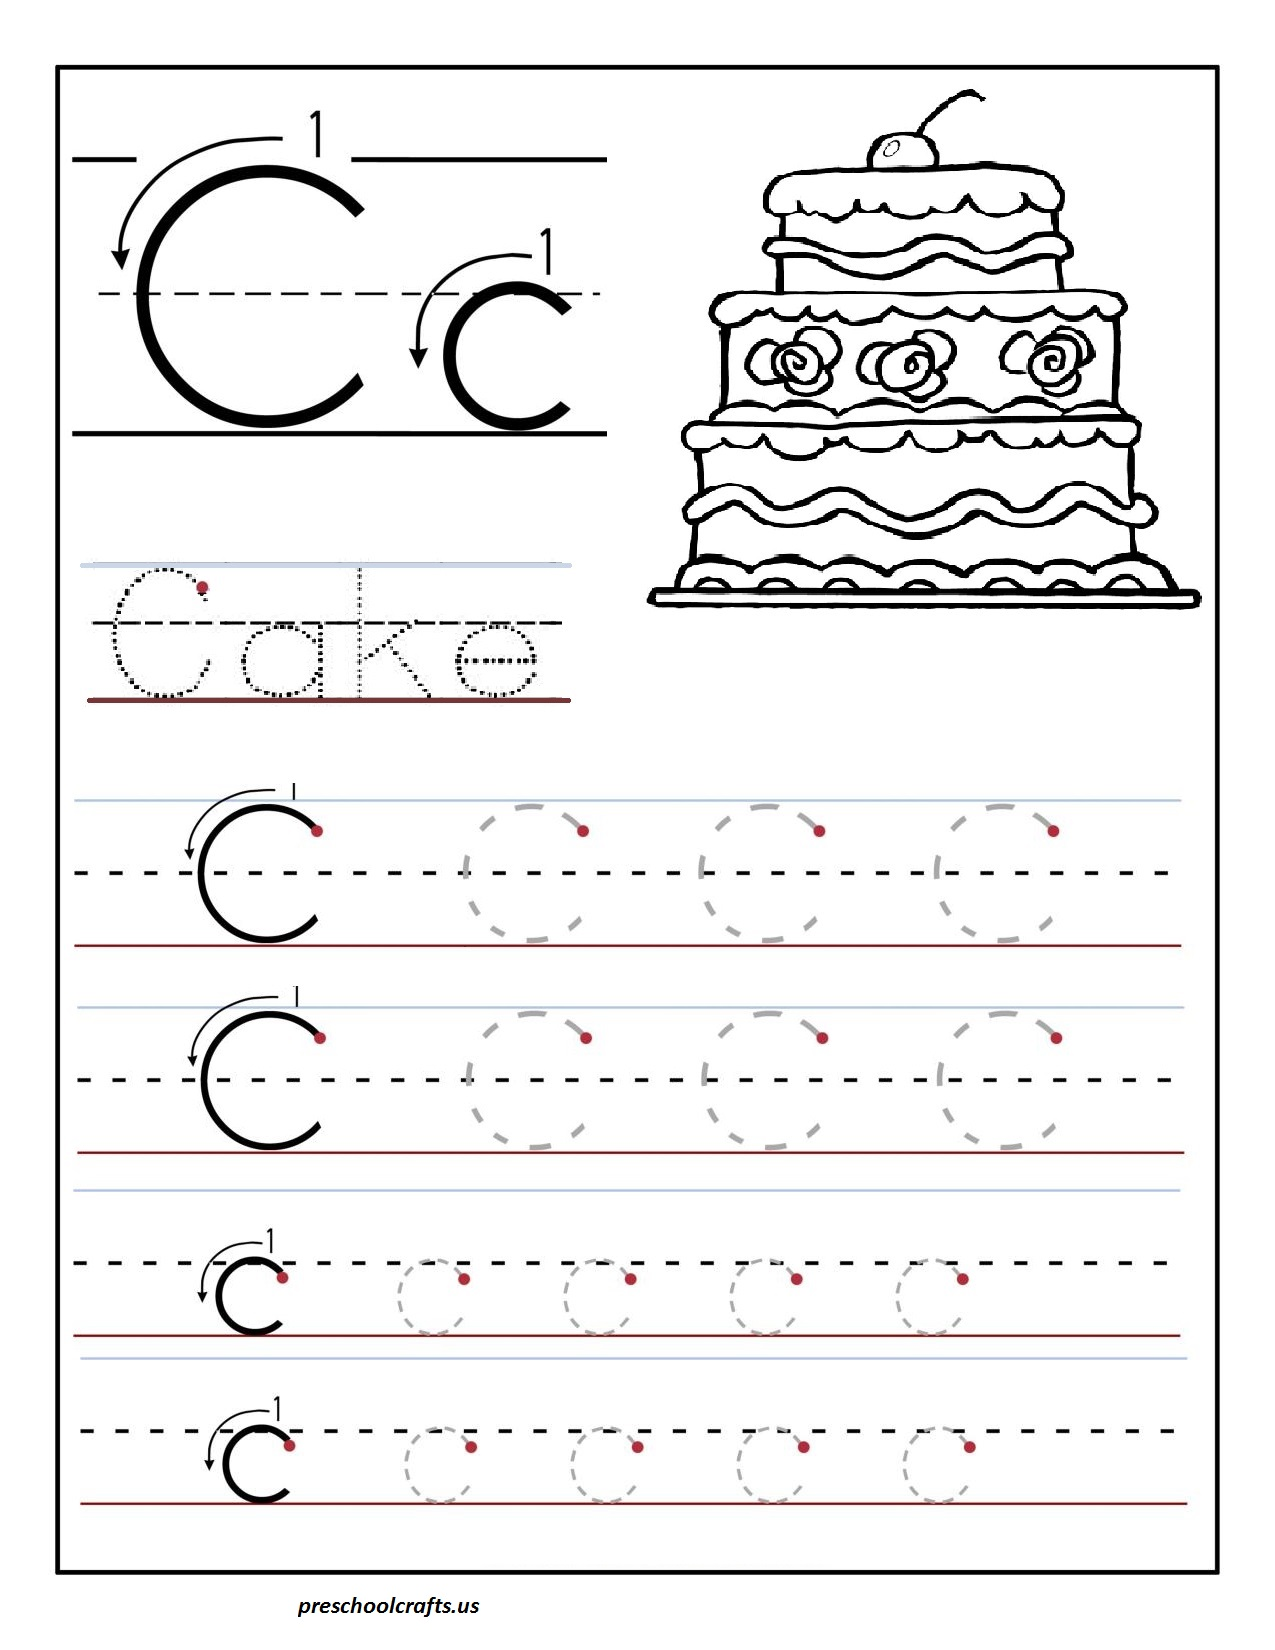 Worksheet Clothes Preschool